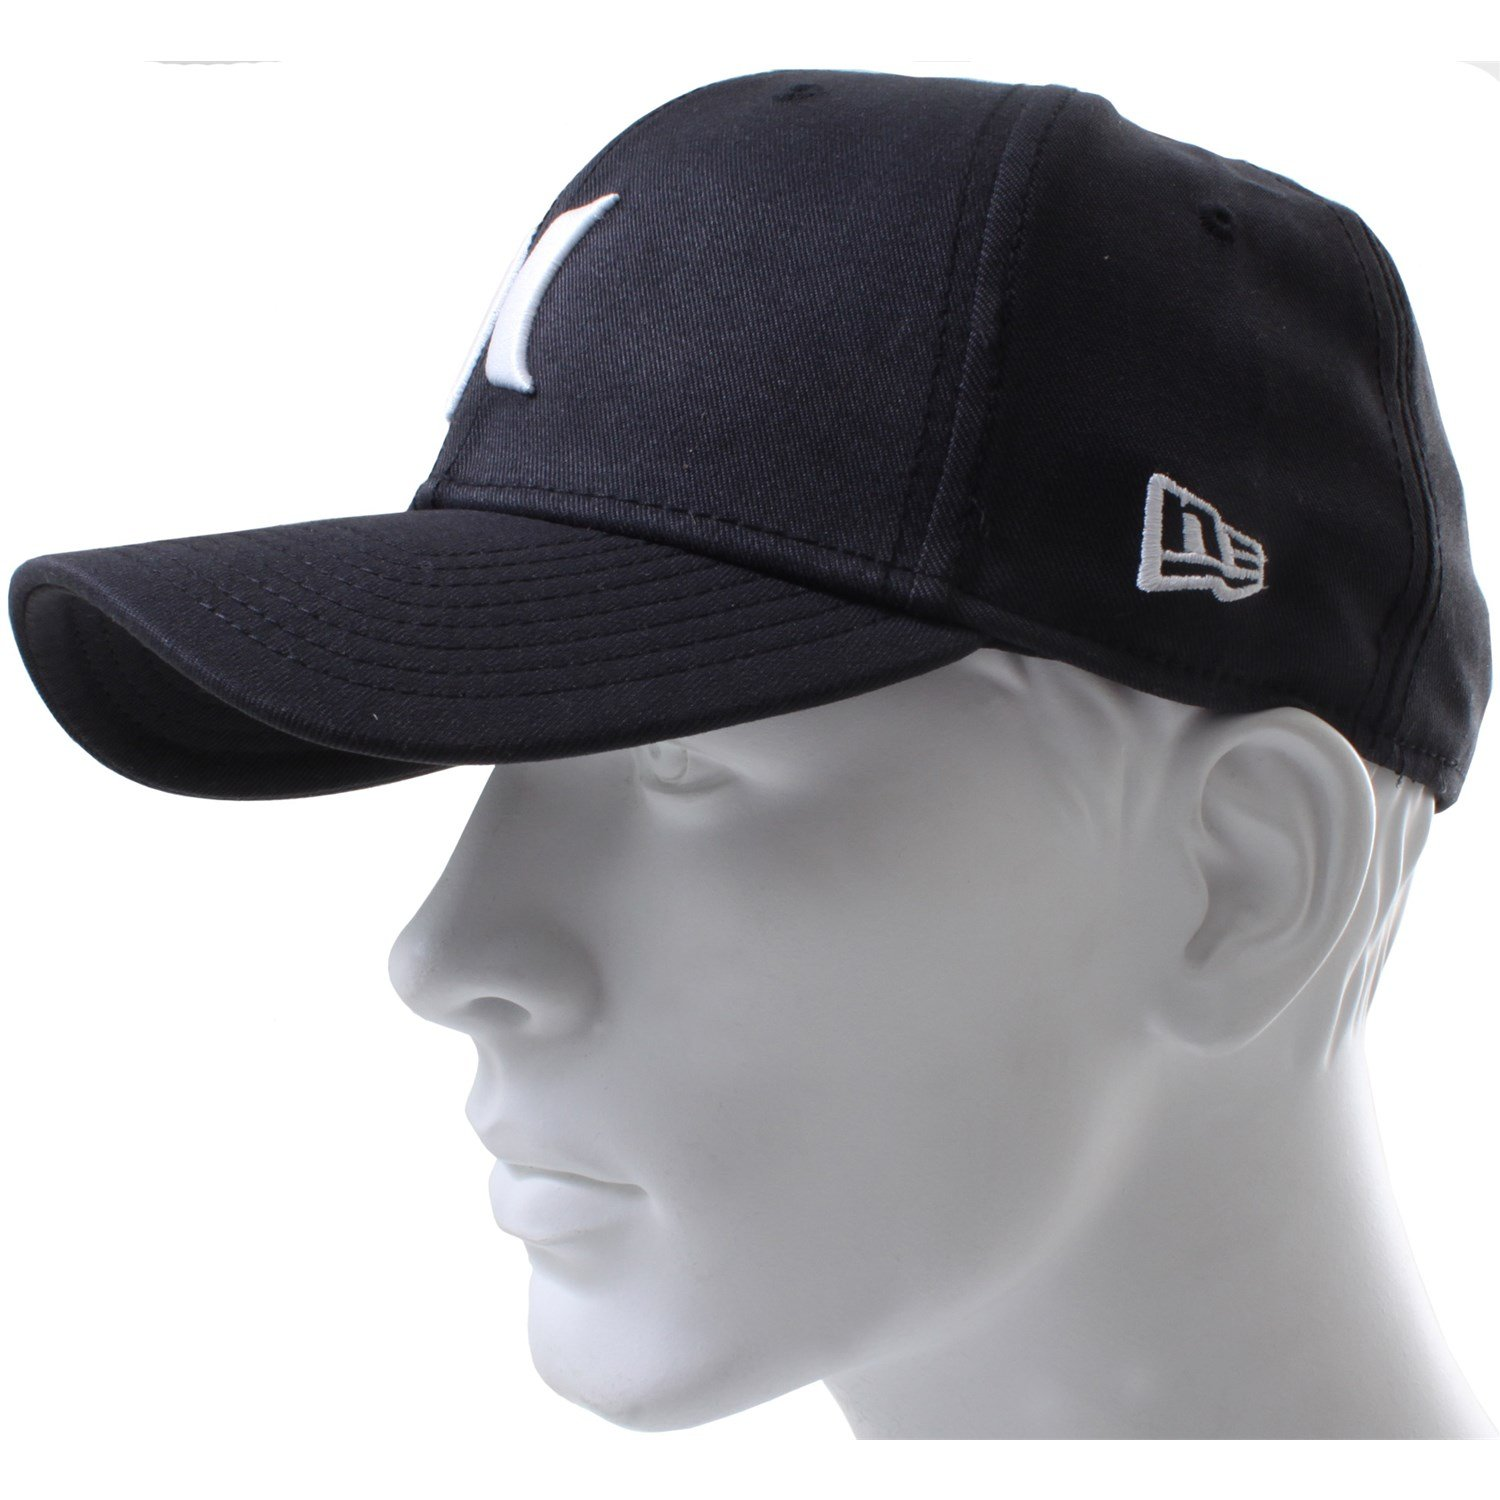 official photos 9fe84 220ce ... france hurley one only black new era hat evo 2199d b2c88